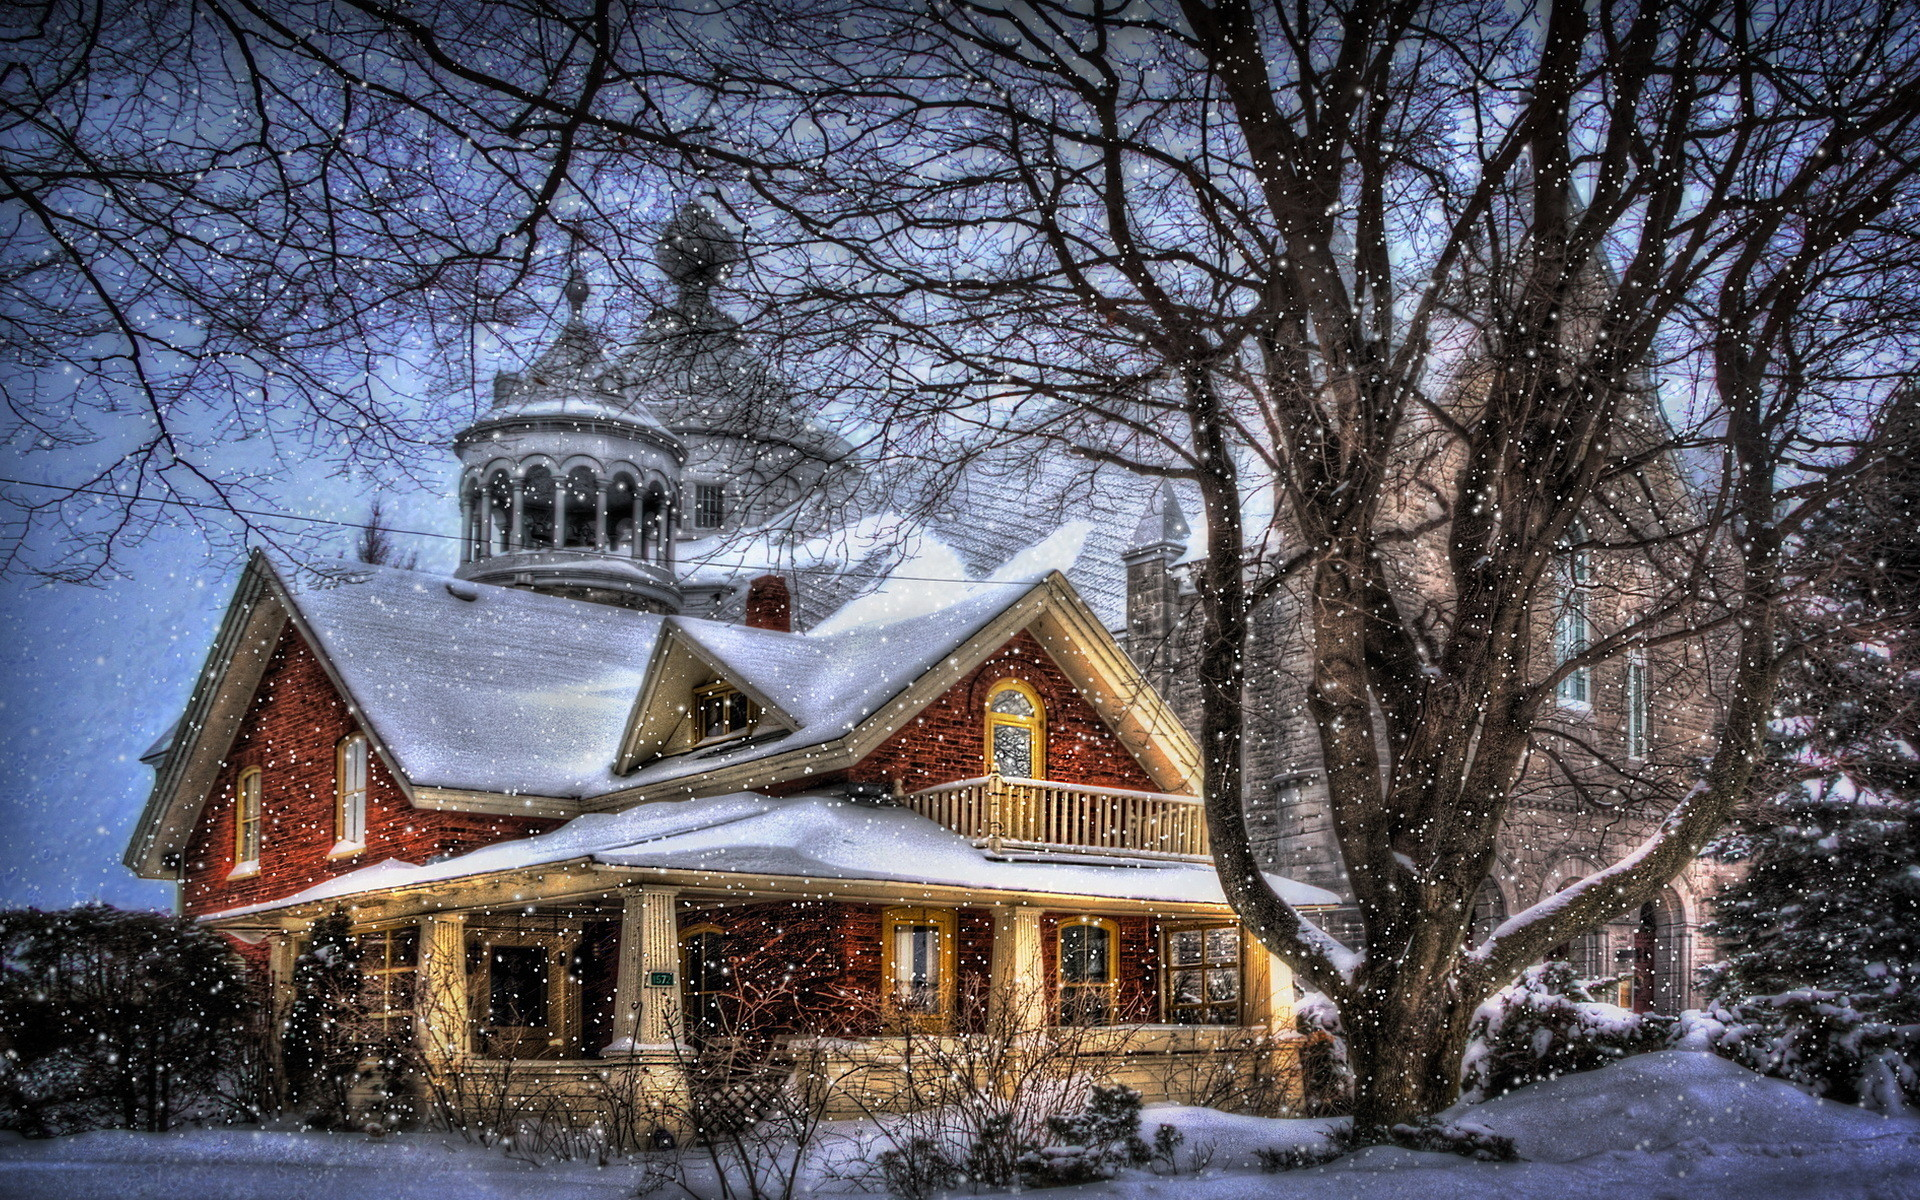 winter christmas house building architecture wallpaper background .